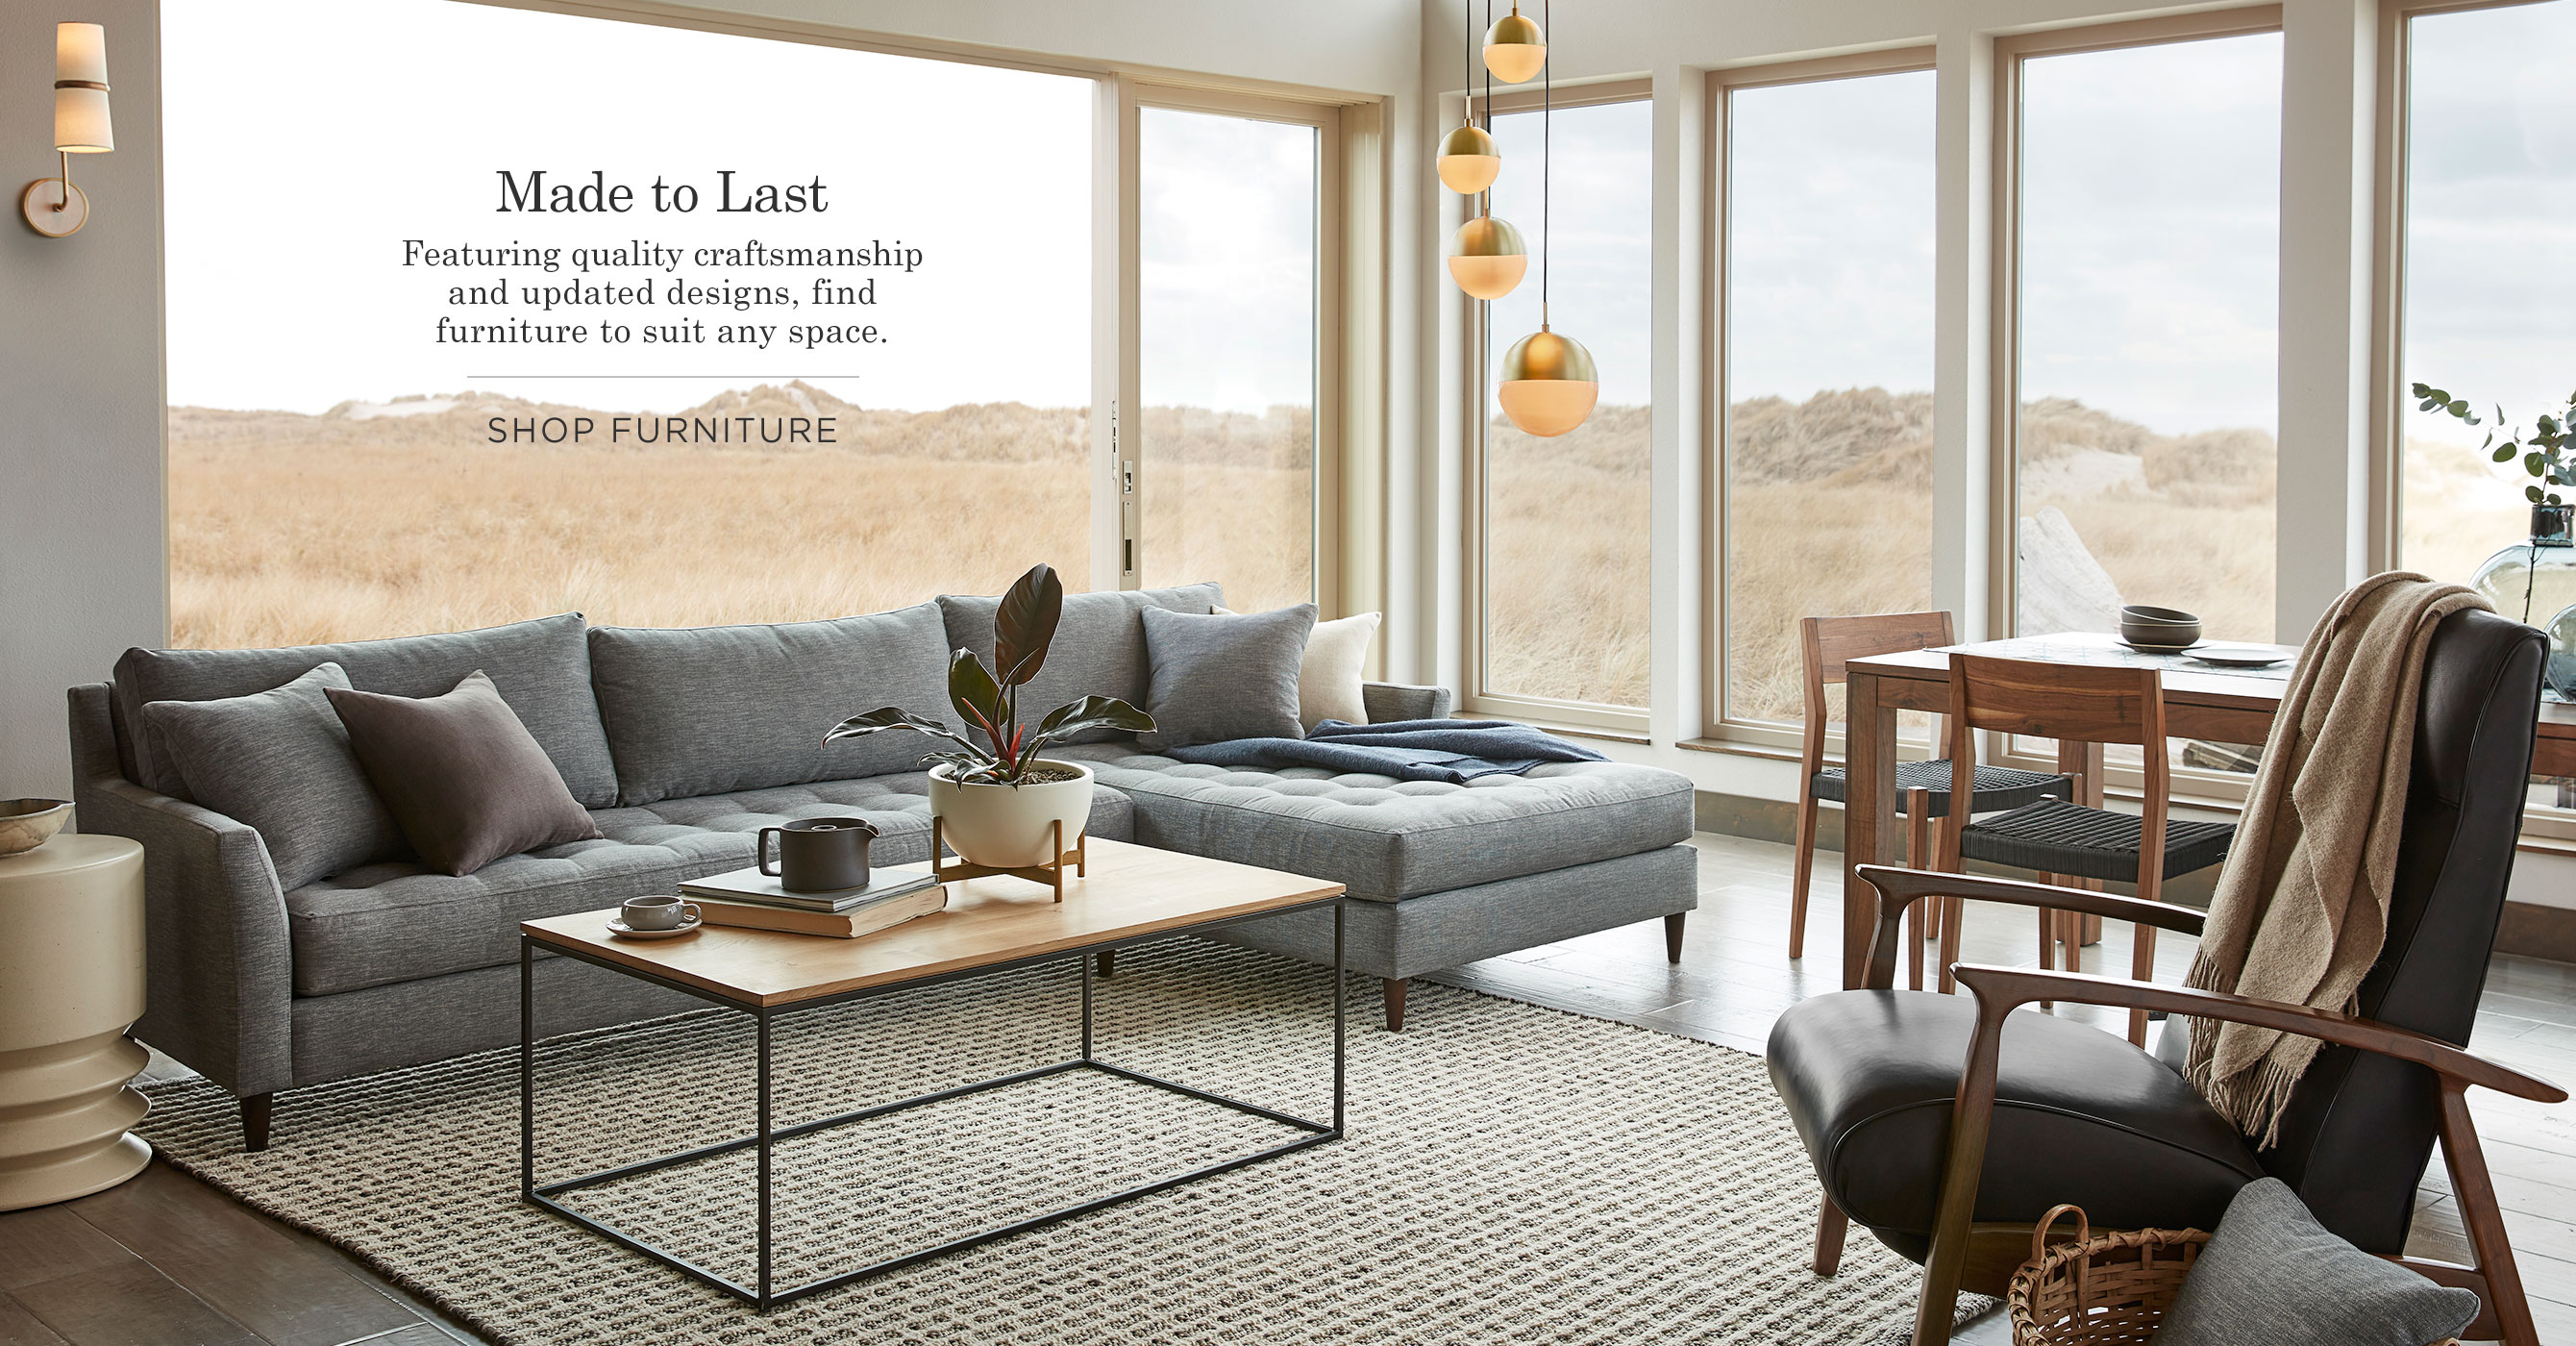 Furniture Made to Last